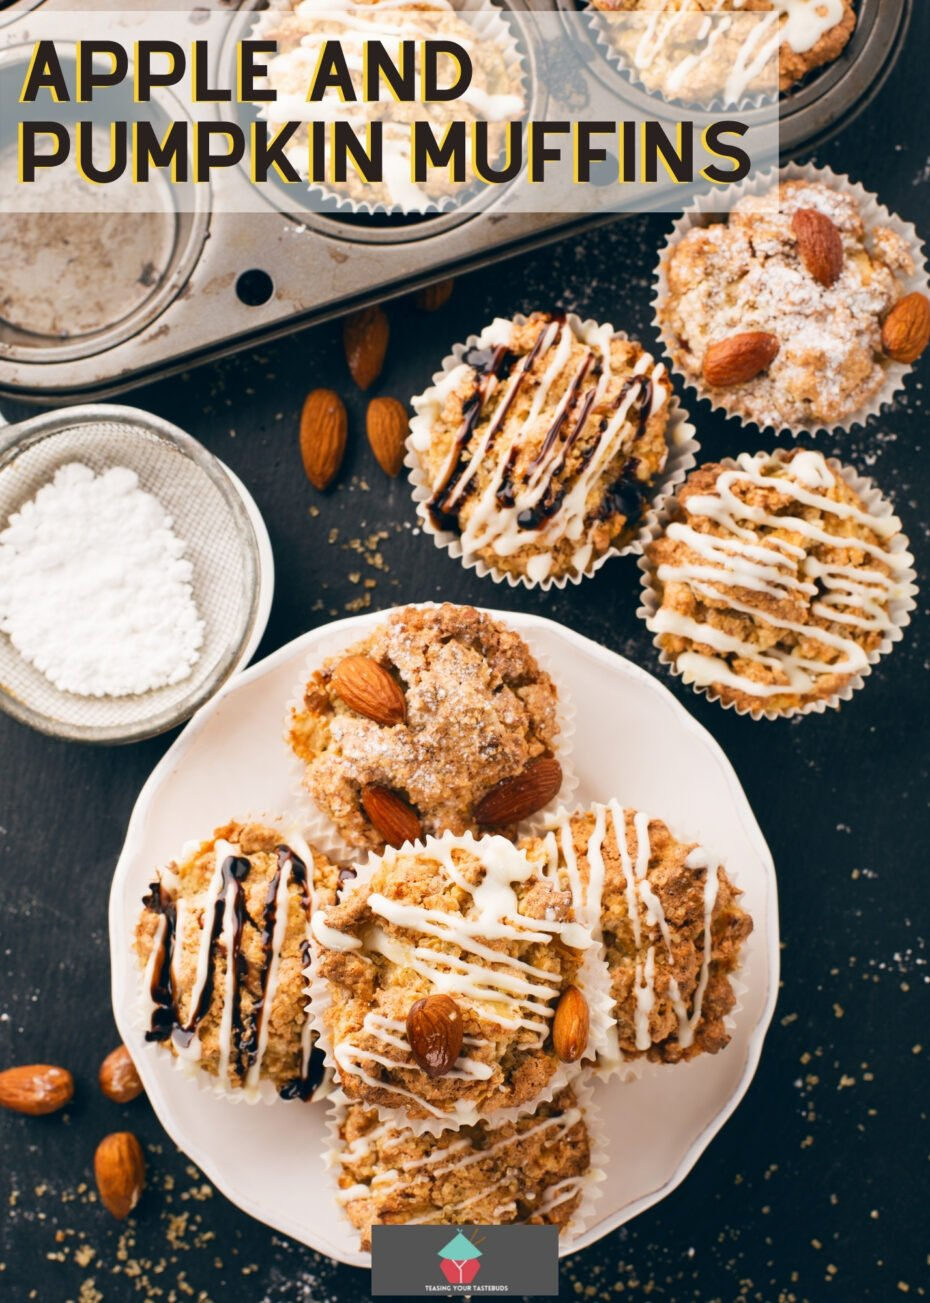 Apple and Pumpkin Muffins! These breakfast muffins are full of the flavors of Fall with pumpkin, apple and cinnamon with a delicious streusel topping. A really easy recipe and that topping is so good!